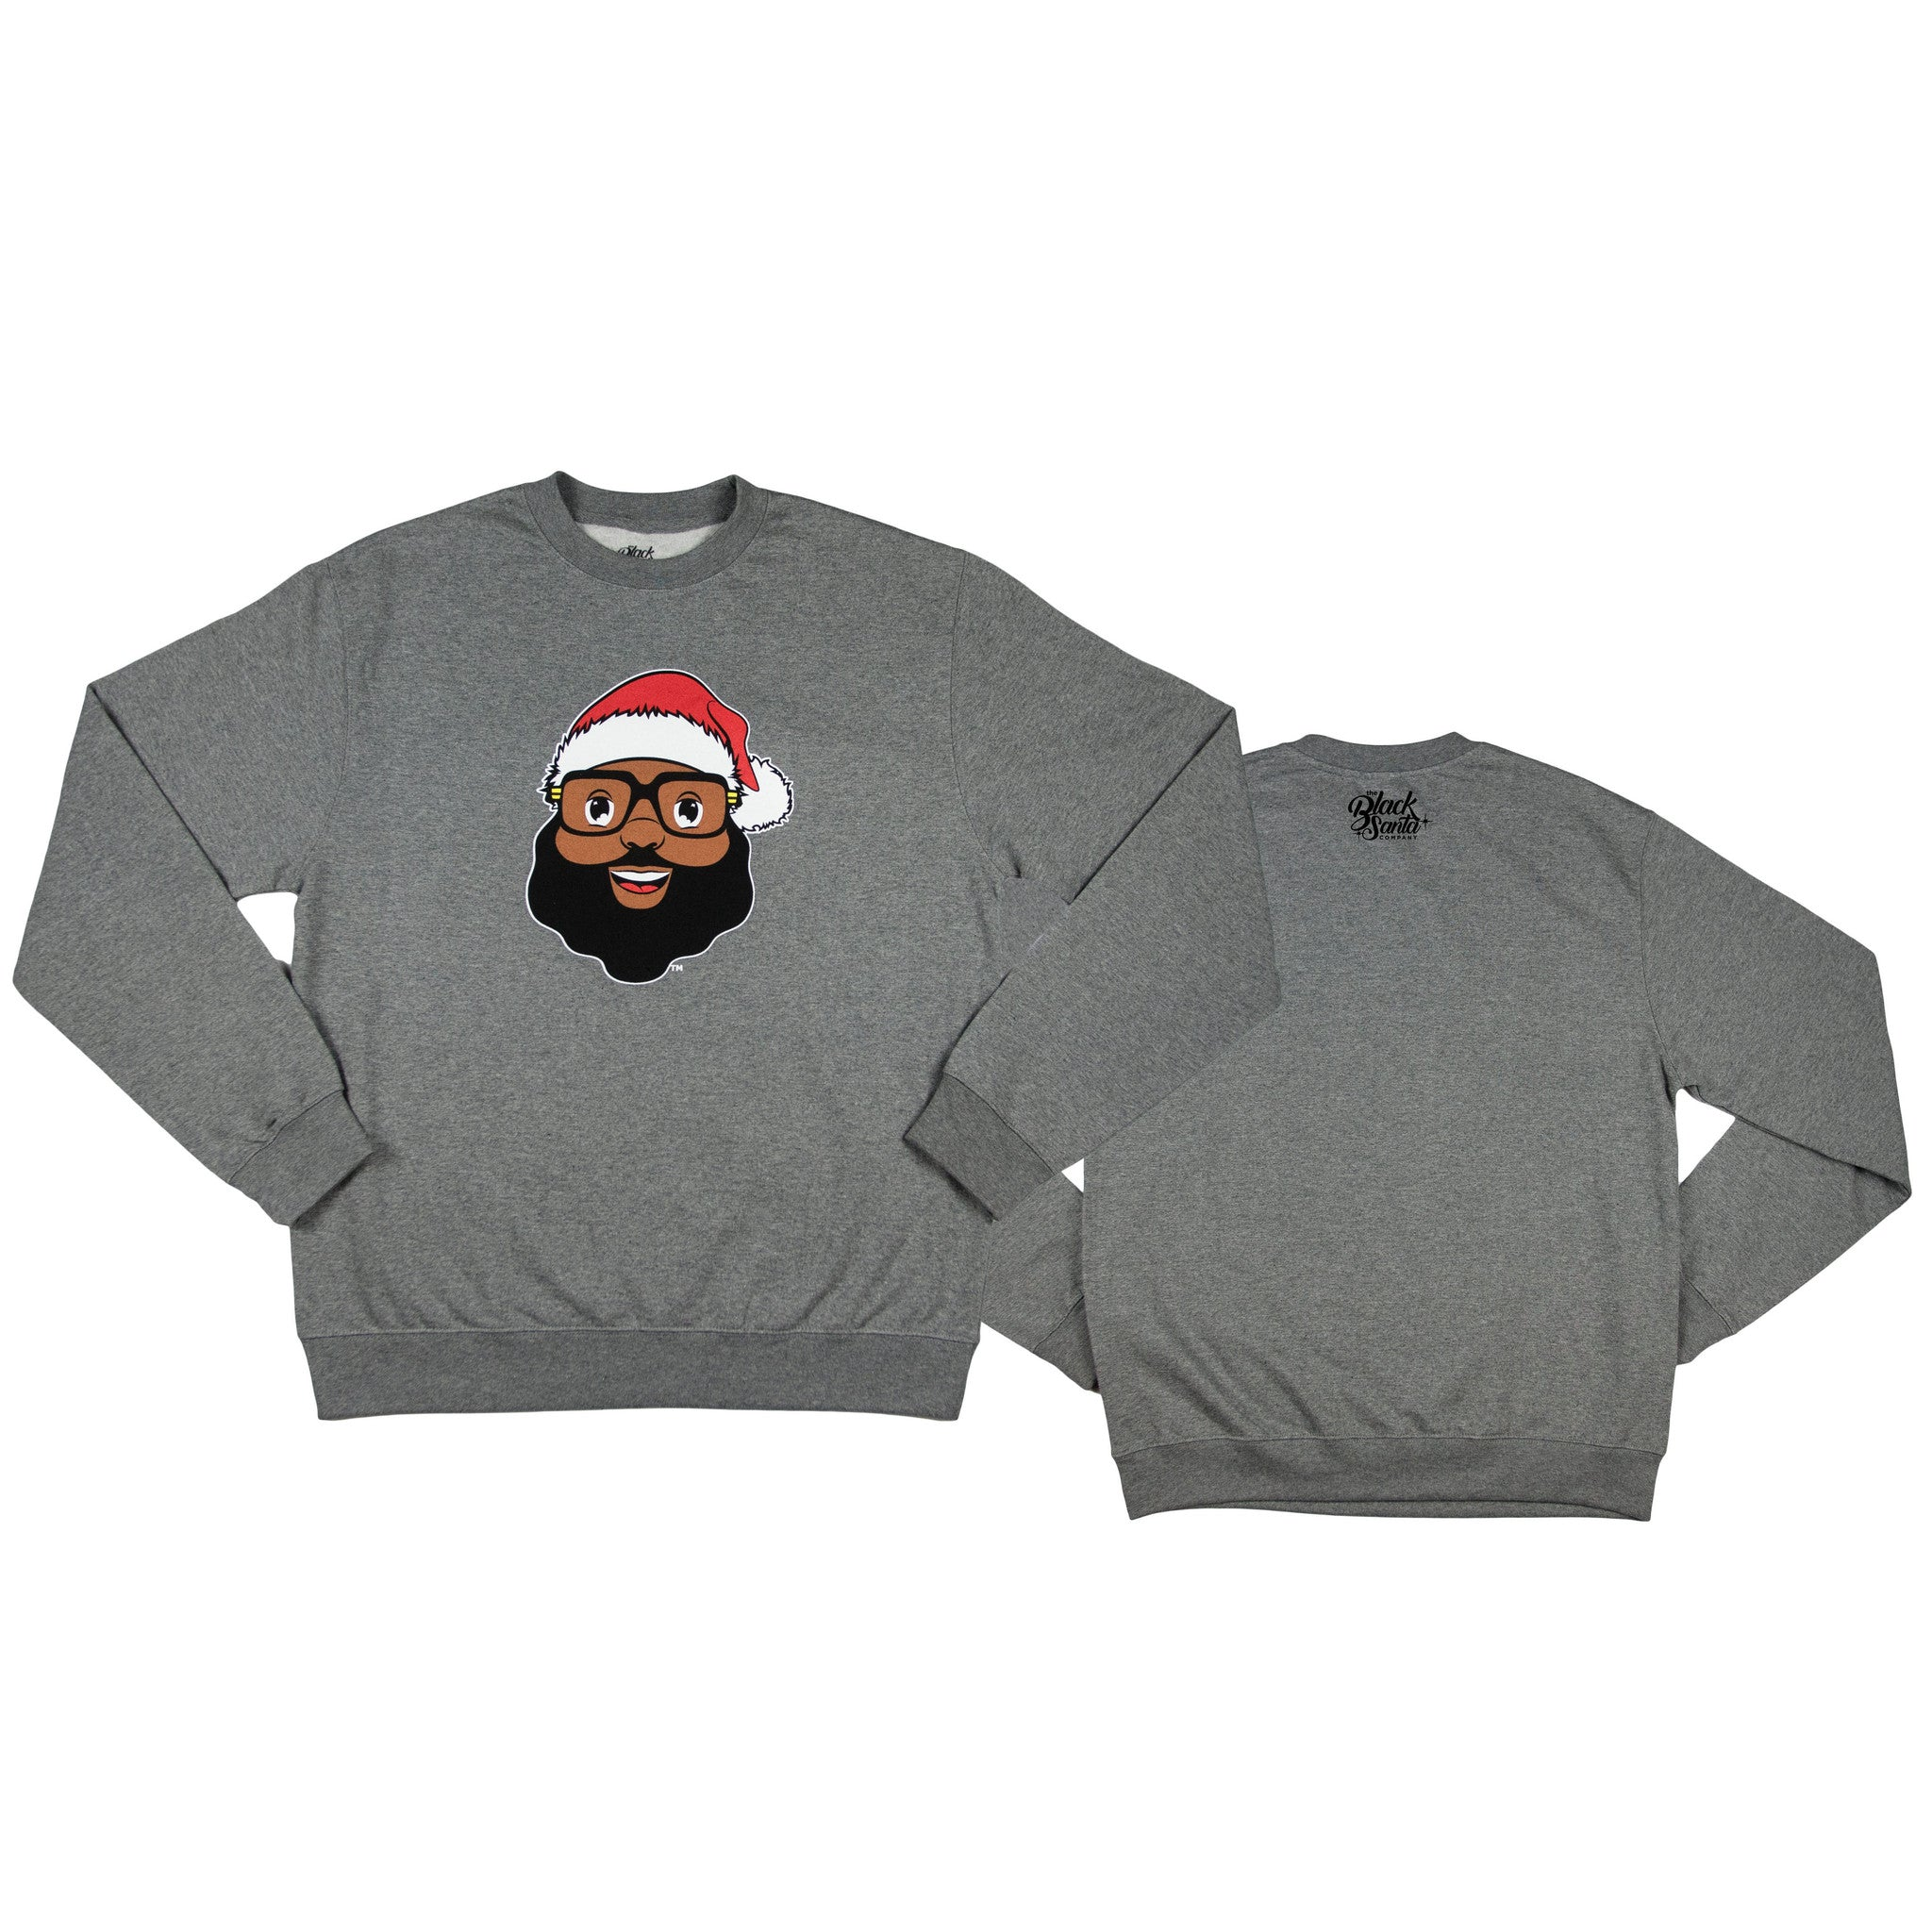 Black Santa Signature Sweatshirt - Light Heather Gray - The Black Santa Company